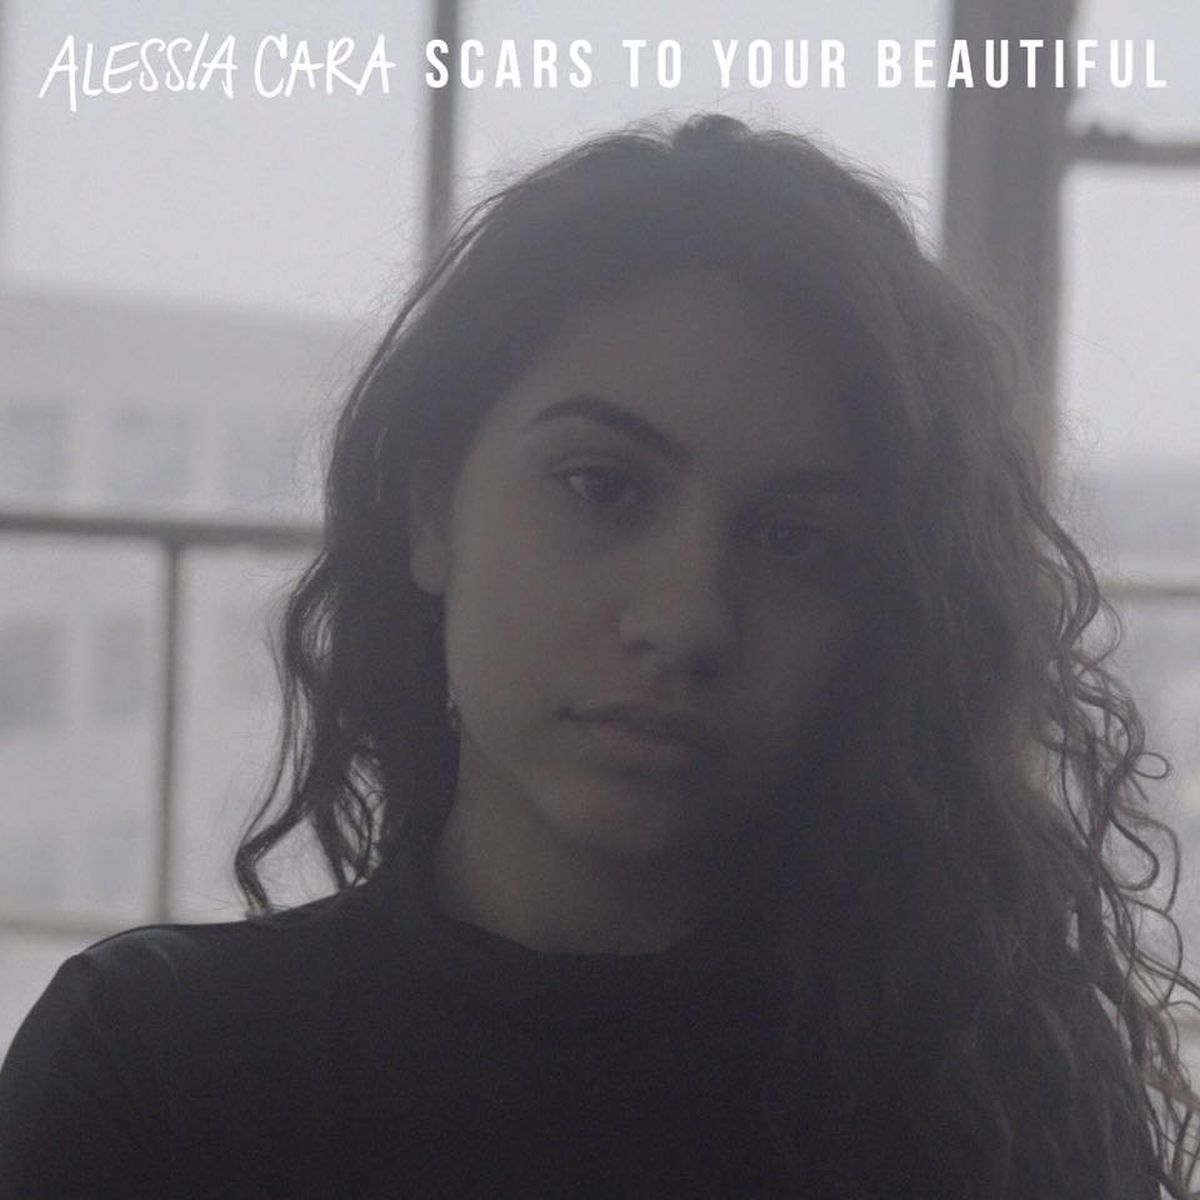 Cover: ALESSIA CARA, SCARS TO YOUR BEAUTIFUL